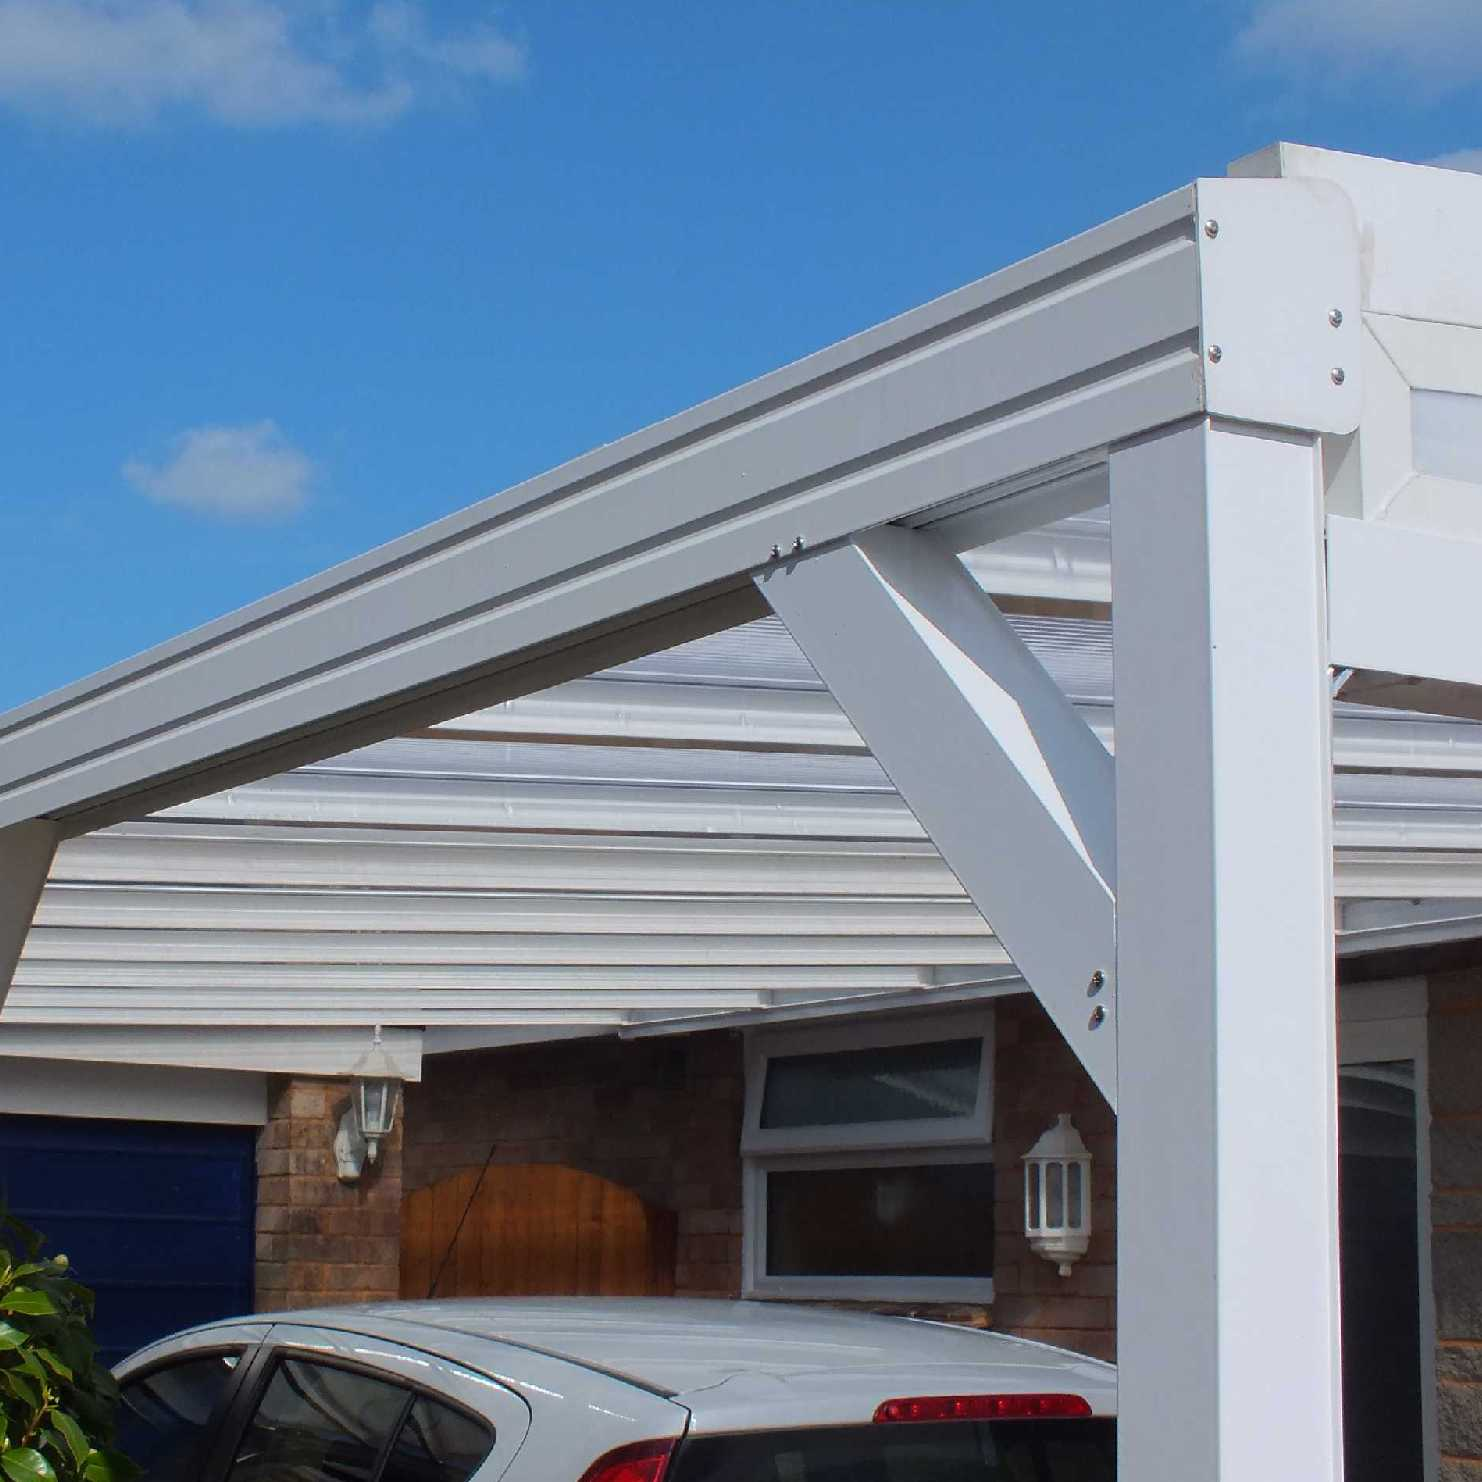 Great deals on Omega Smart Lean-To Canopy with 16mm Polycarbonate Glazing - 7.4m (W) x 1.5m (P), (4) Supporting Posts